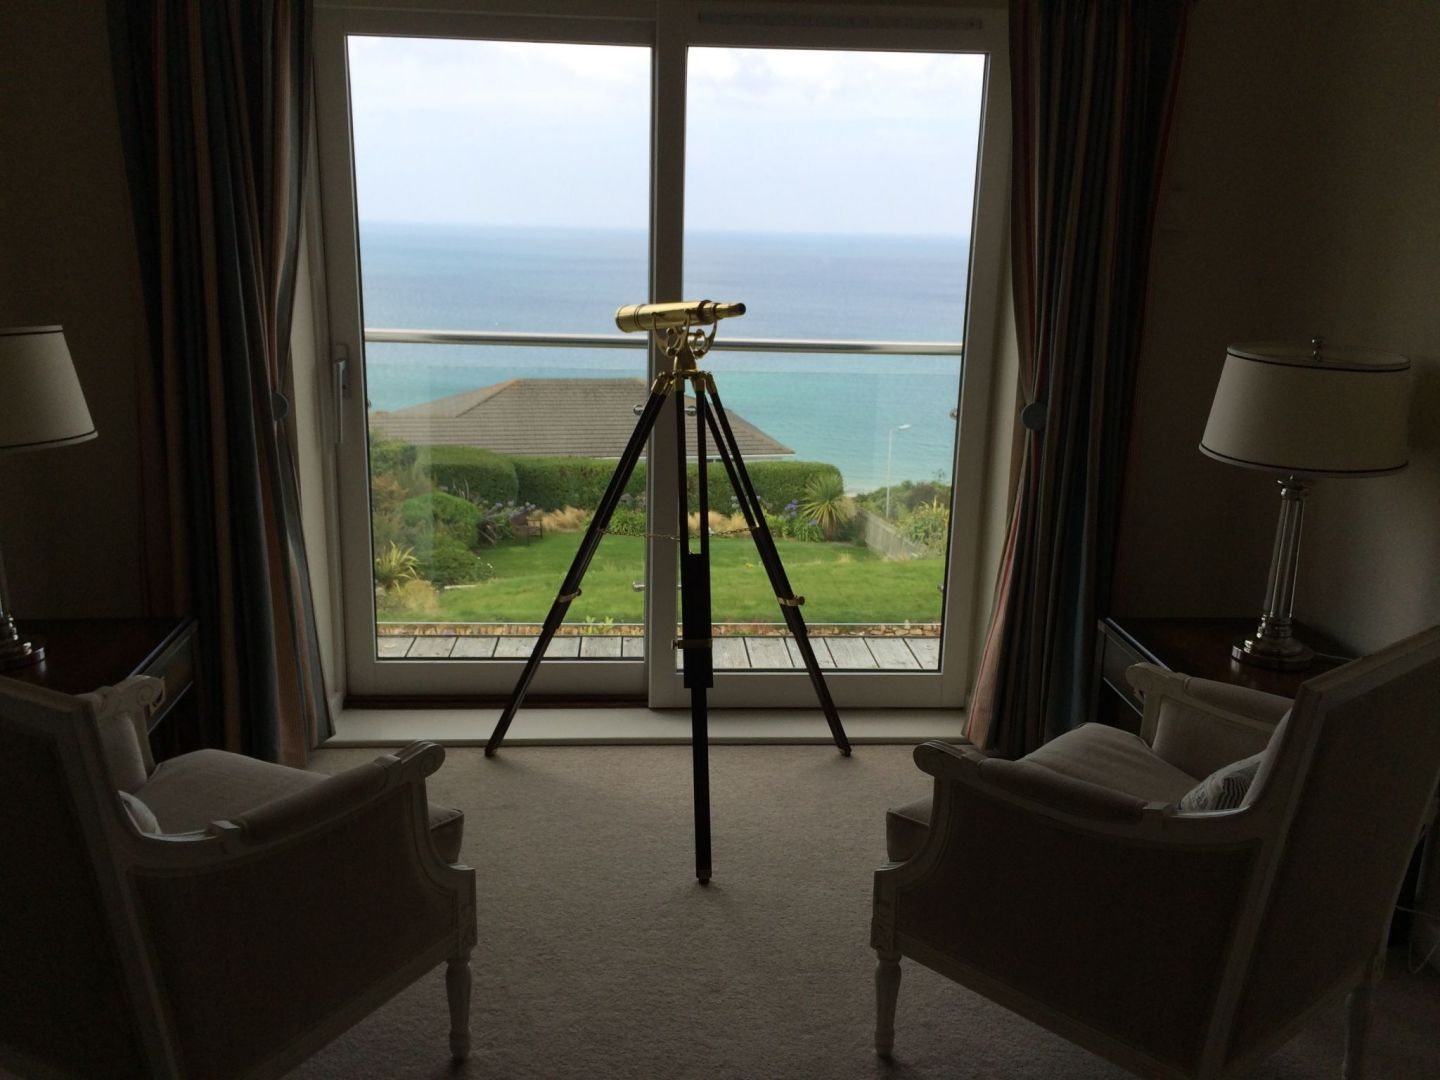 Telescope for viewing Carbis Bay, Cornwall